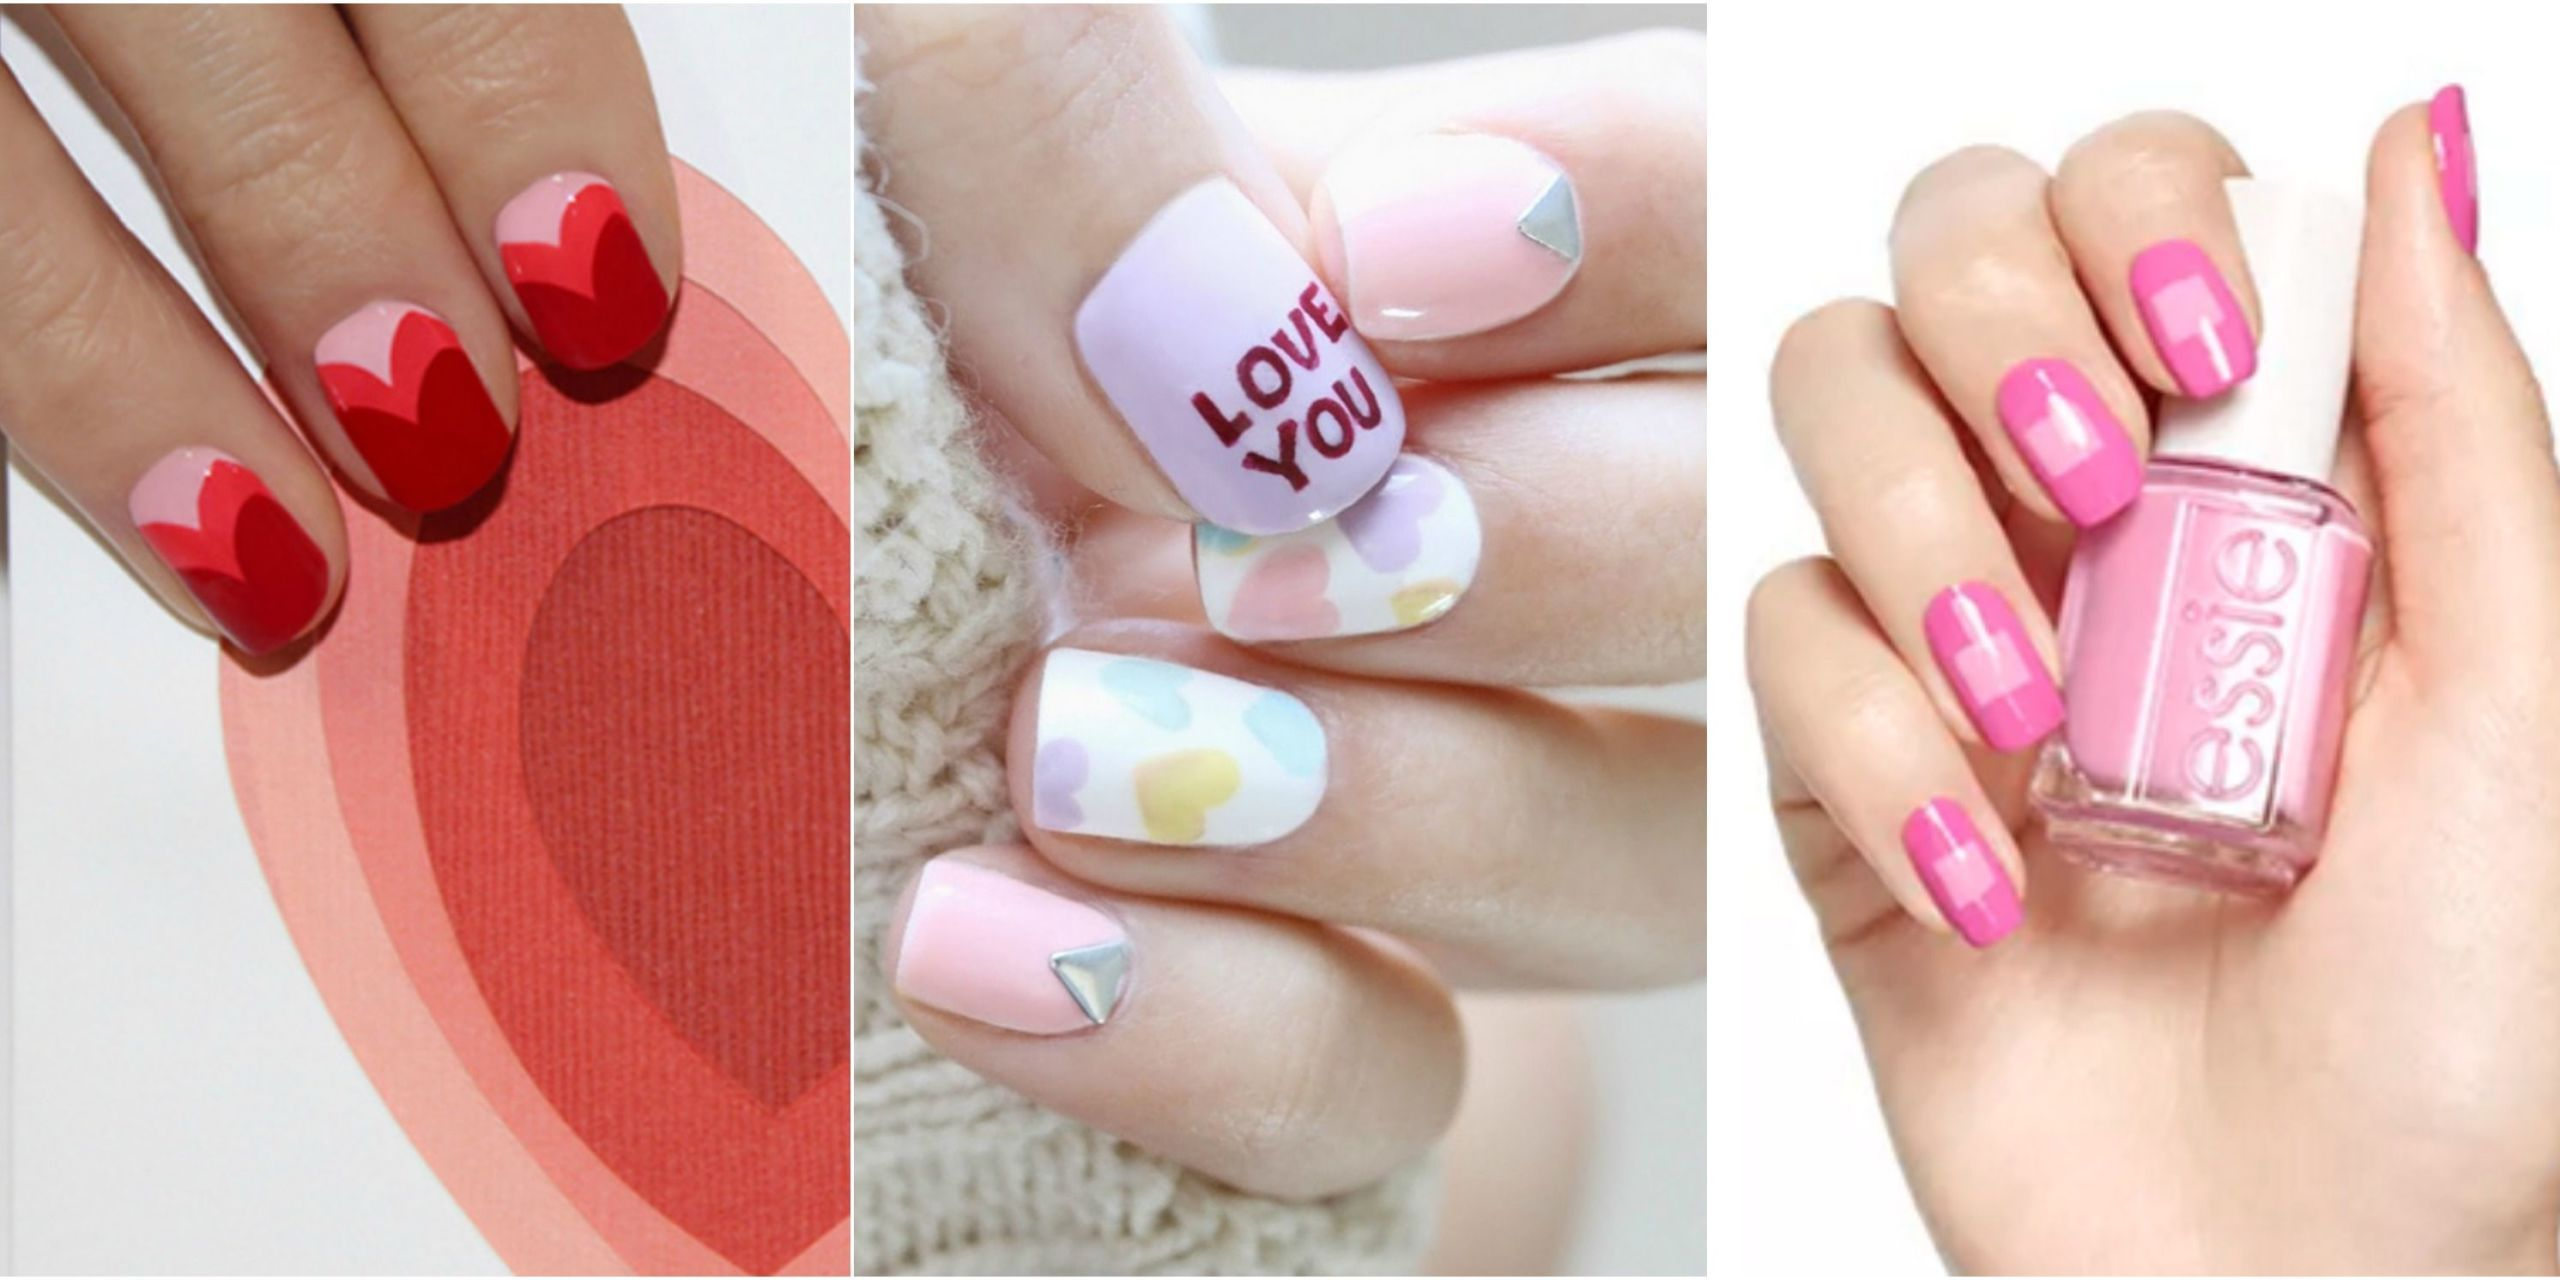 Wear Your Heart On Nails With One Of These Super Sweet Manicure Designs Bold Shapes Sugary Hearts And That Clic Red White Color Palette Will